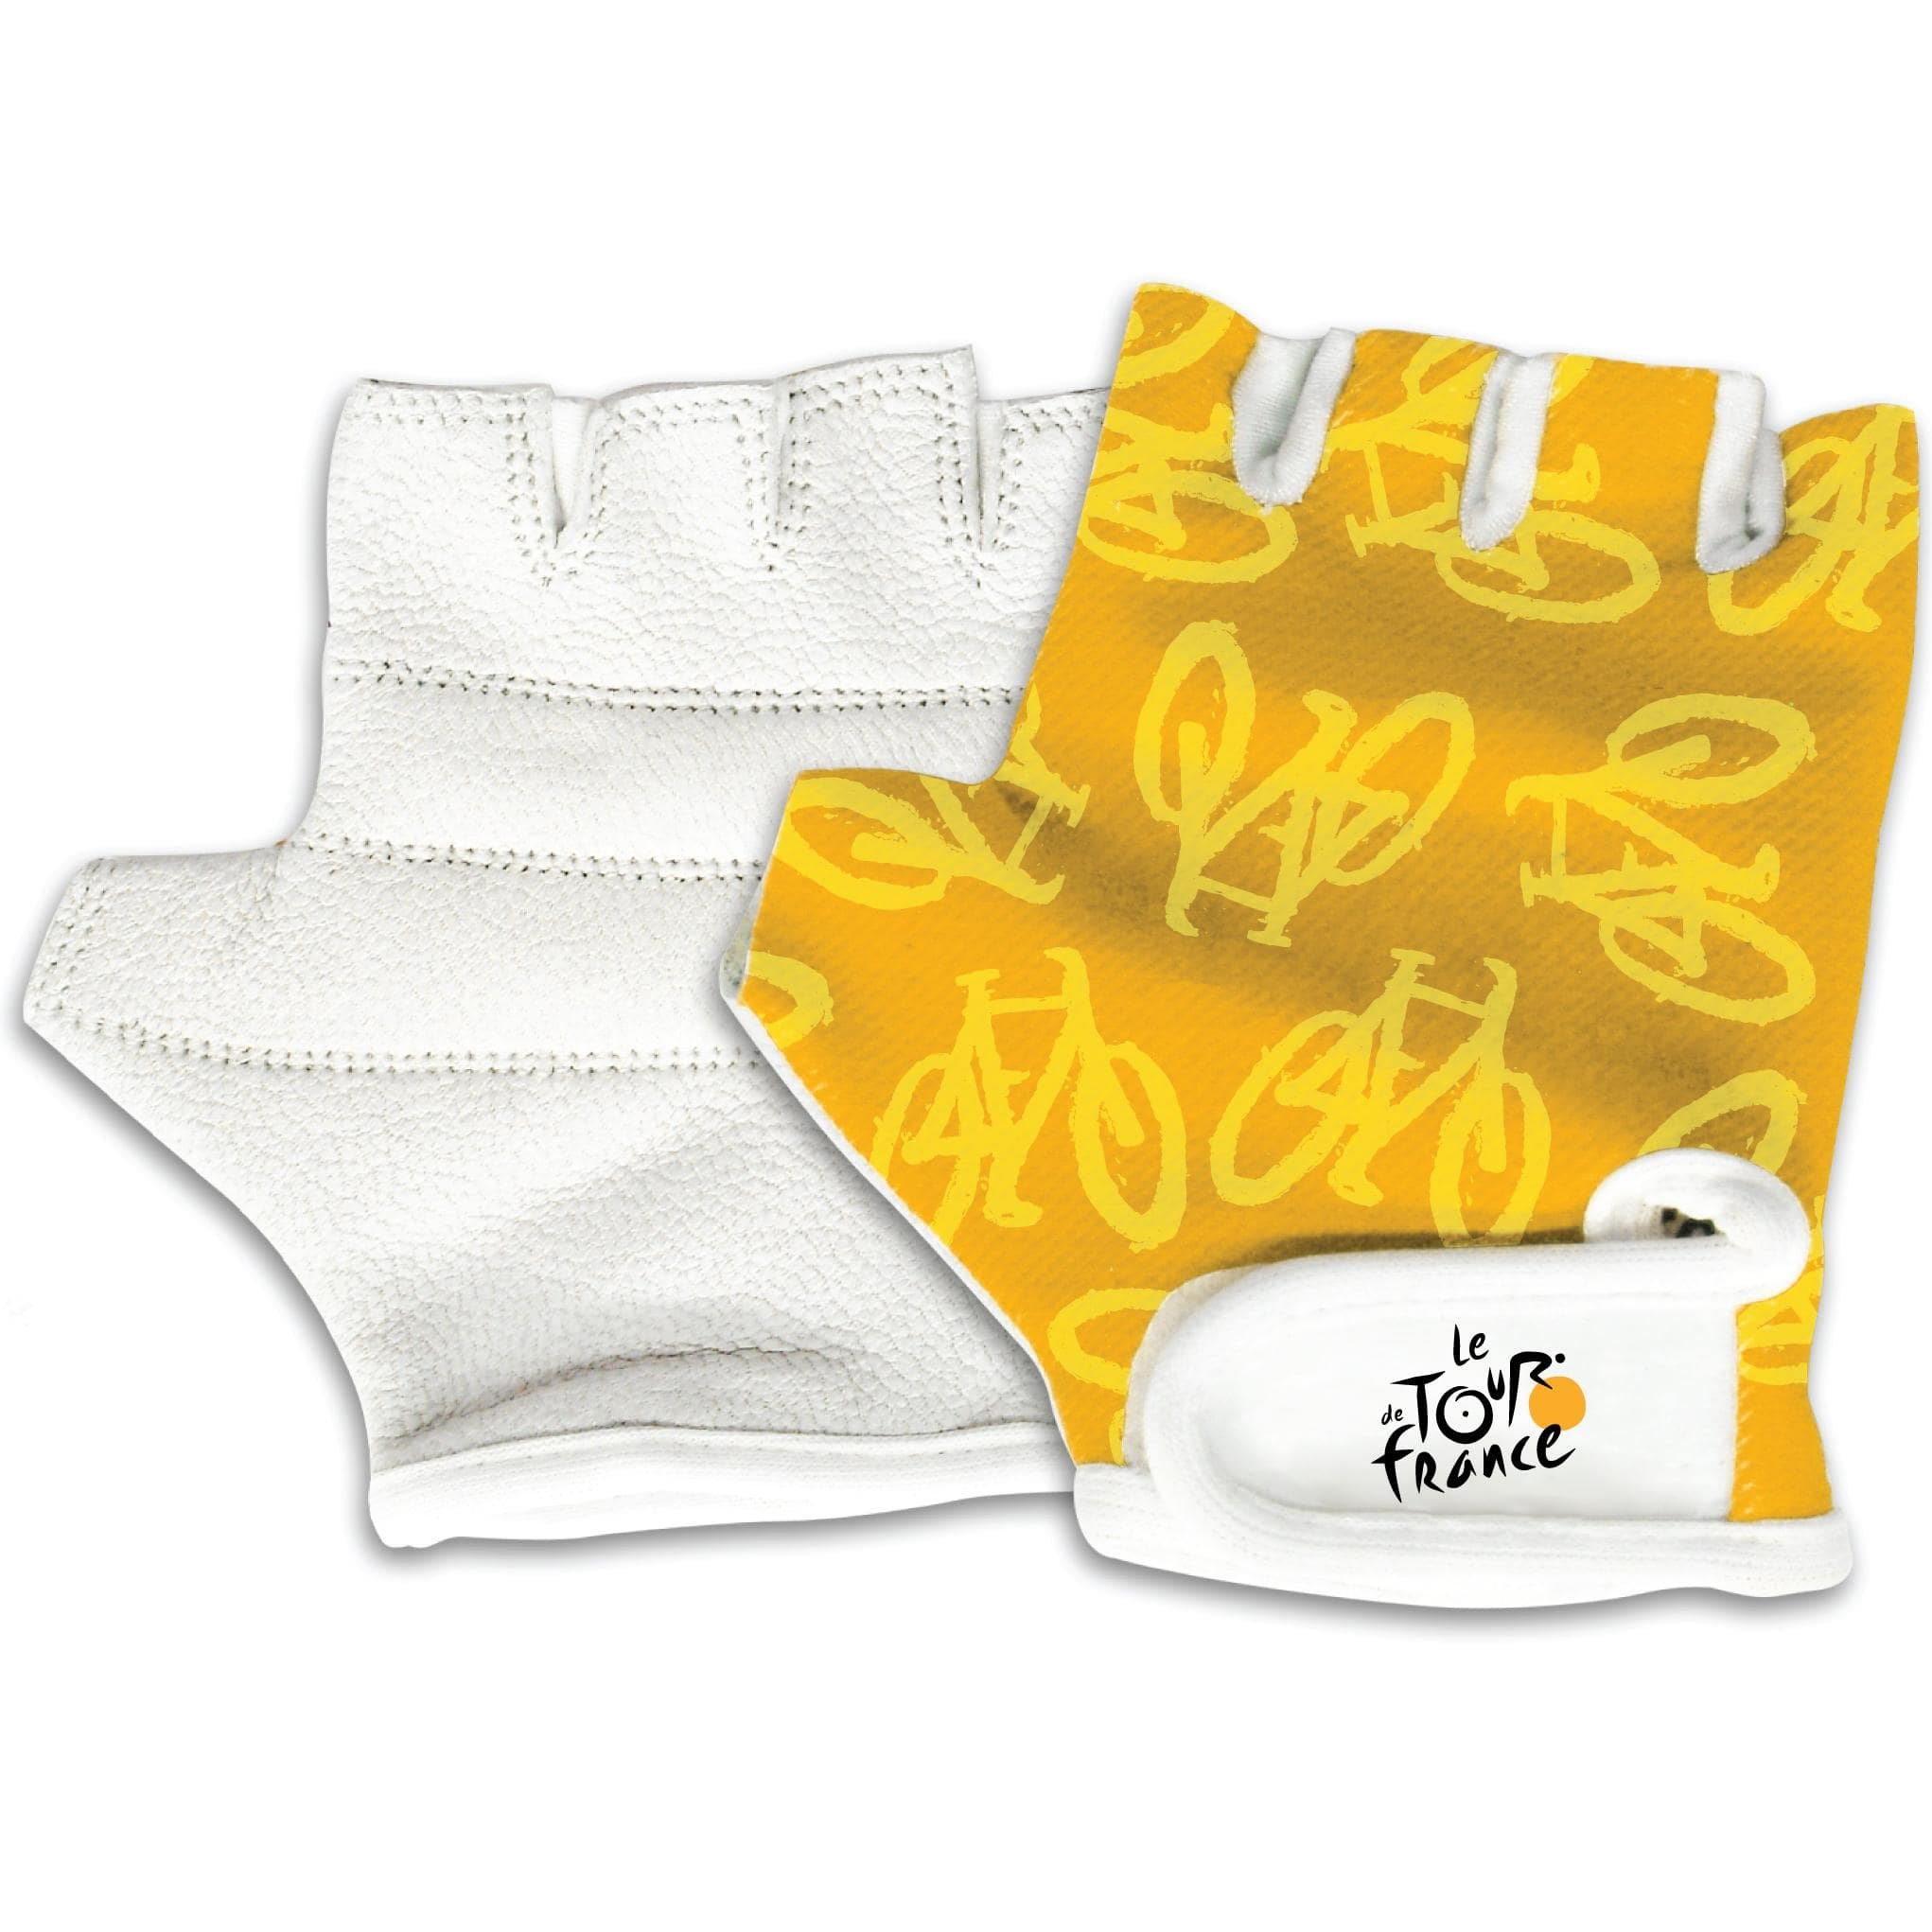 Tour de France Youth Bicycle Gloves